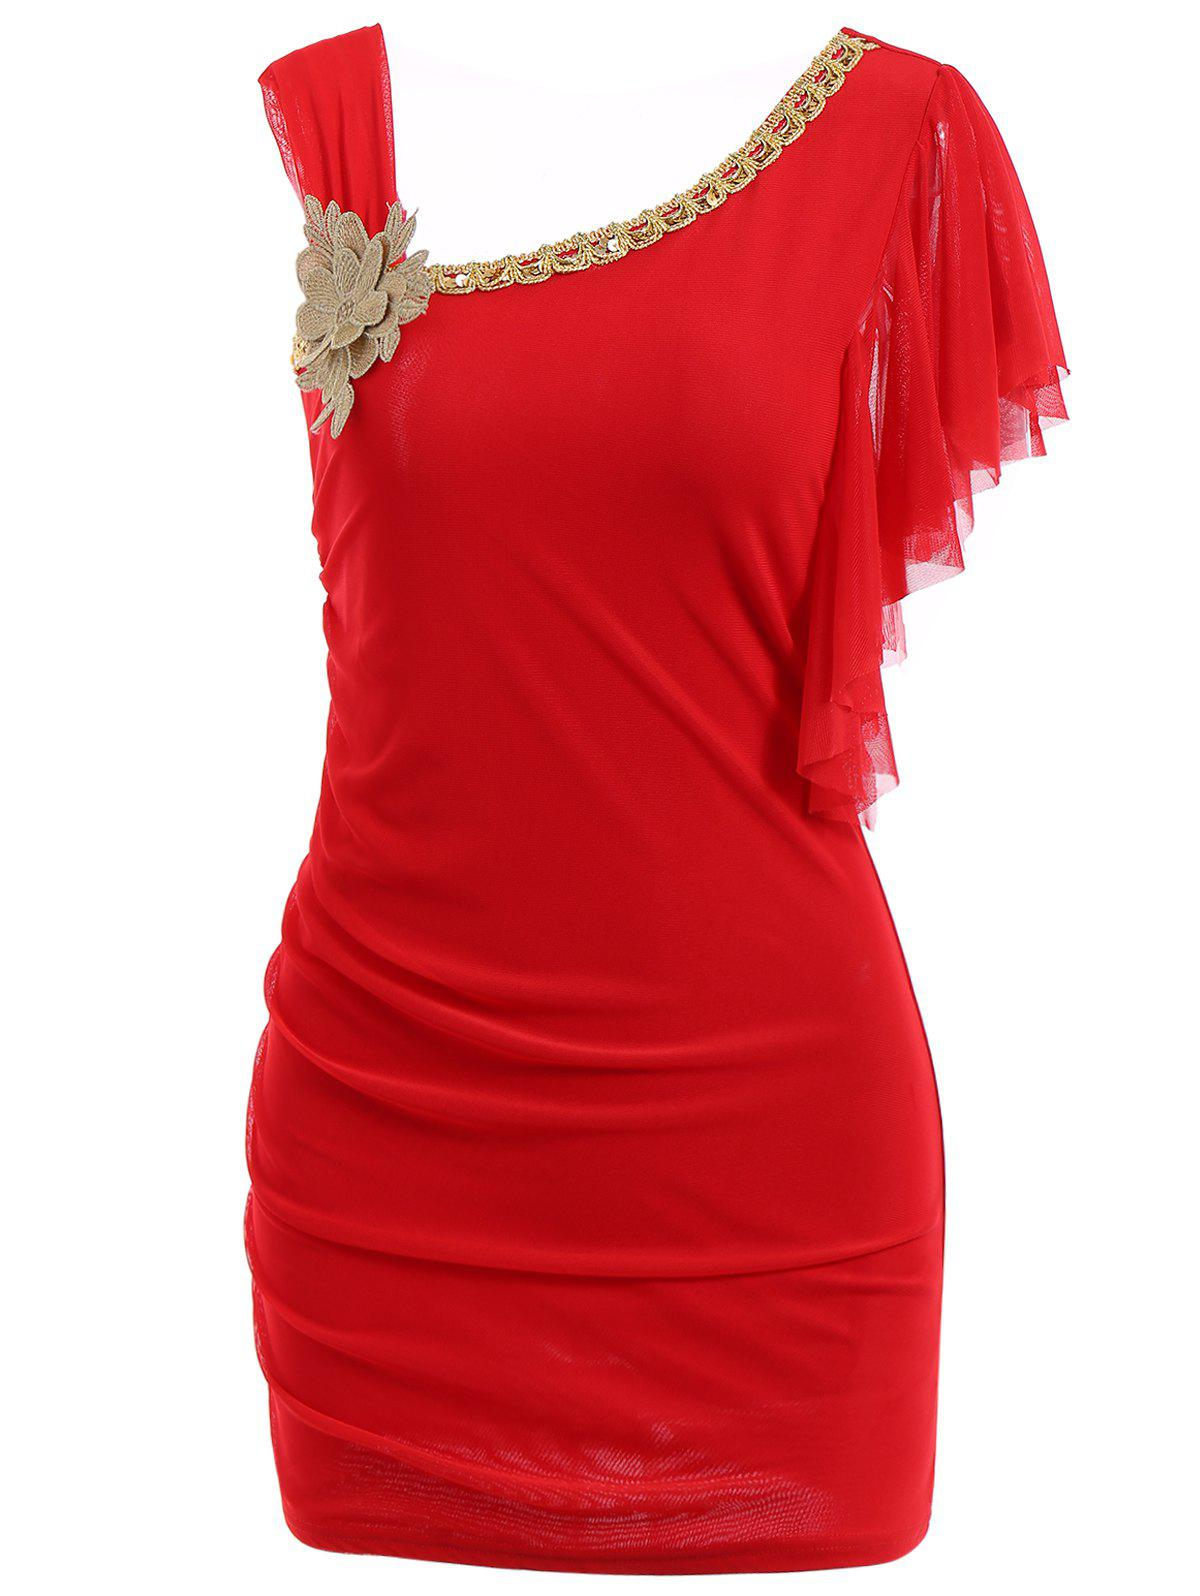 Women's Chiffon Solid Color Ruffles Flounces Beam Waist Packet Buttock Chain And Corsage Embellished Stylish Dress - RED ONE SIZE